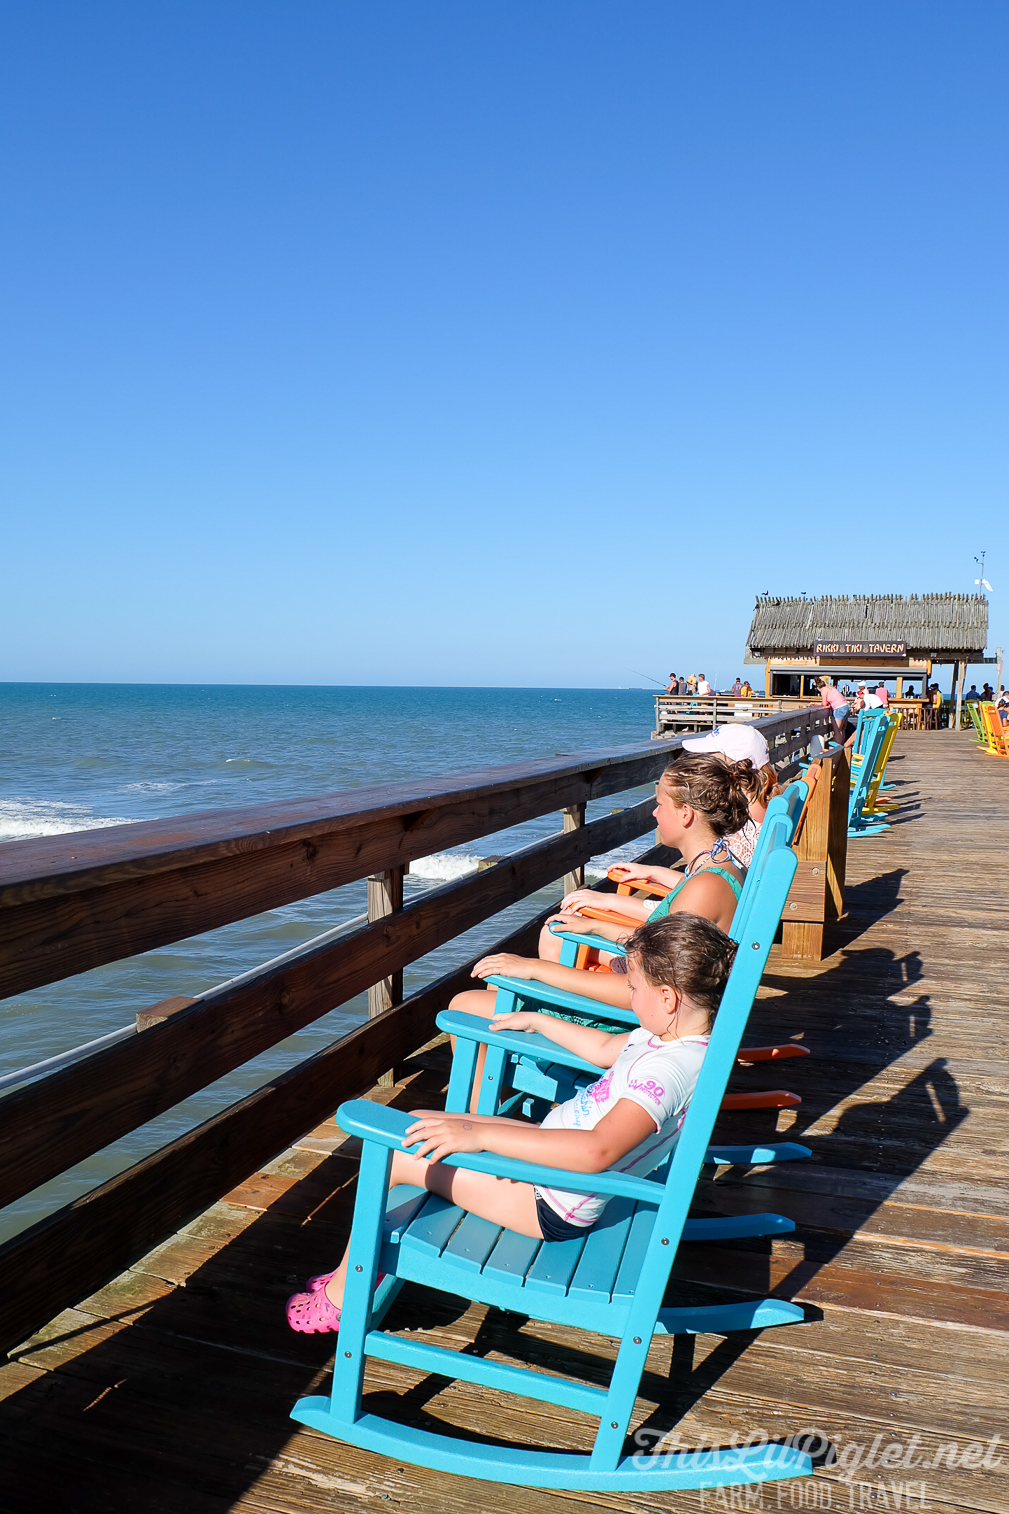 Things to do at Cocoa Beach on Florida's Space Coast - Cocoa Beach Pier via @thislilpiglet